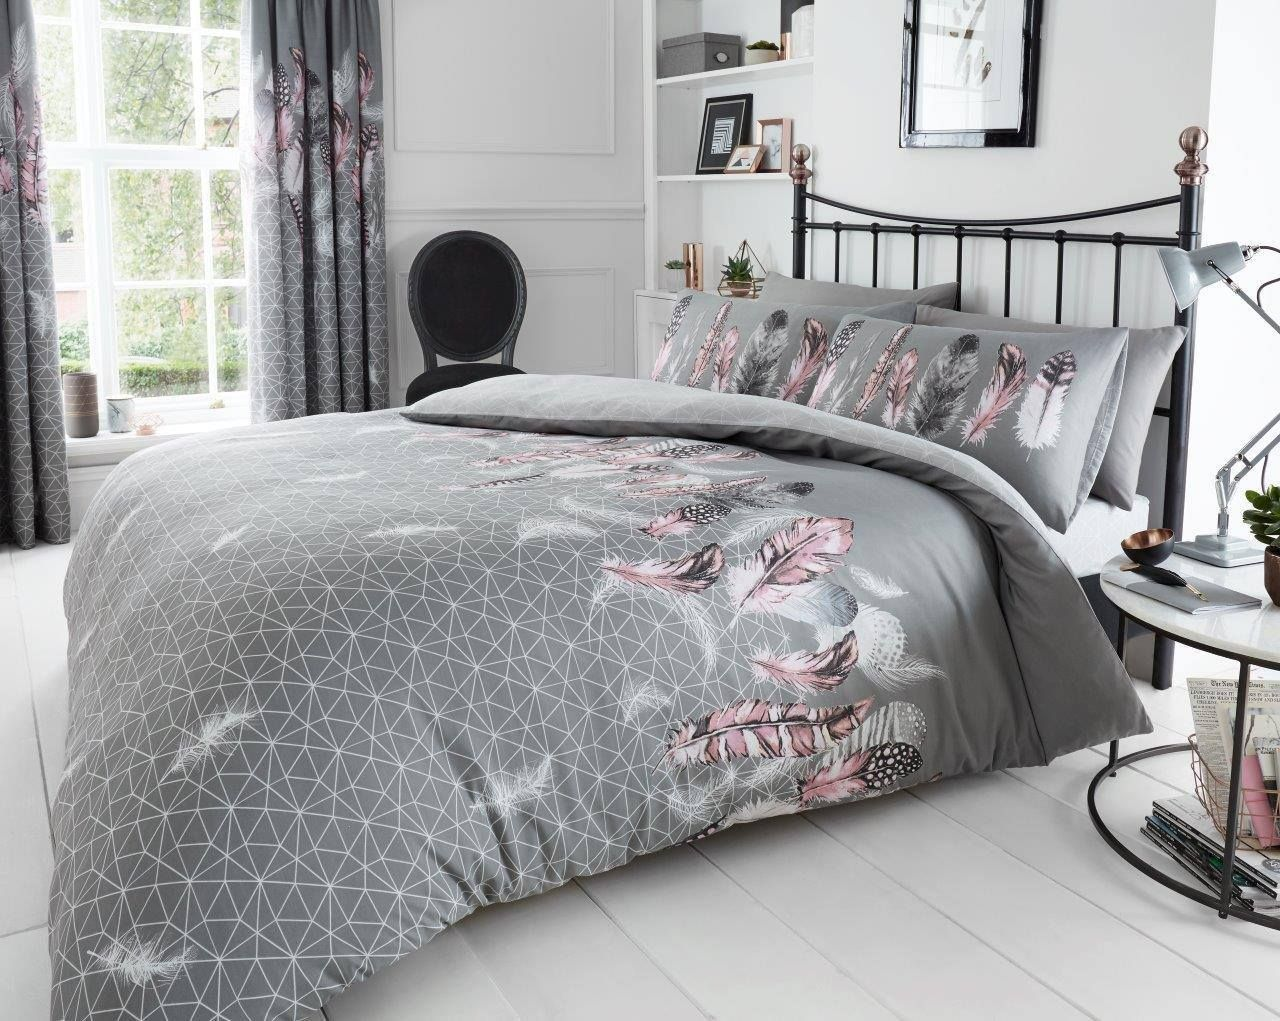 Features a delicate feather and geometric design.  #Reversible design #featherduvetset #bedset #bedroomcomforts #cosybedrooms #featherbedset #theaccessoryzone